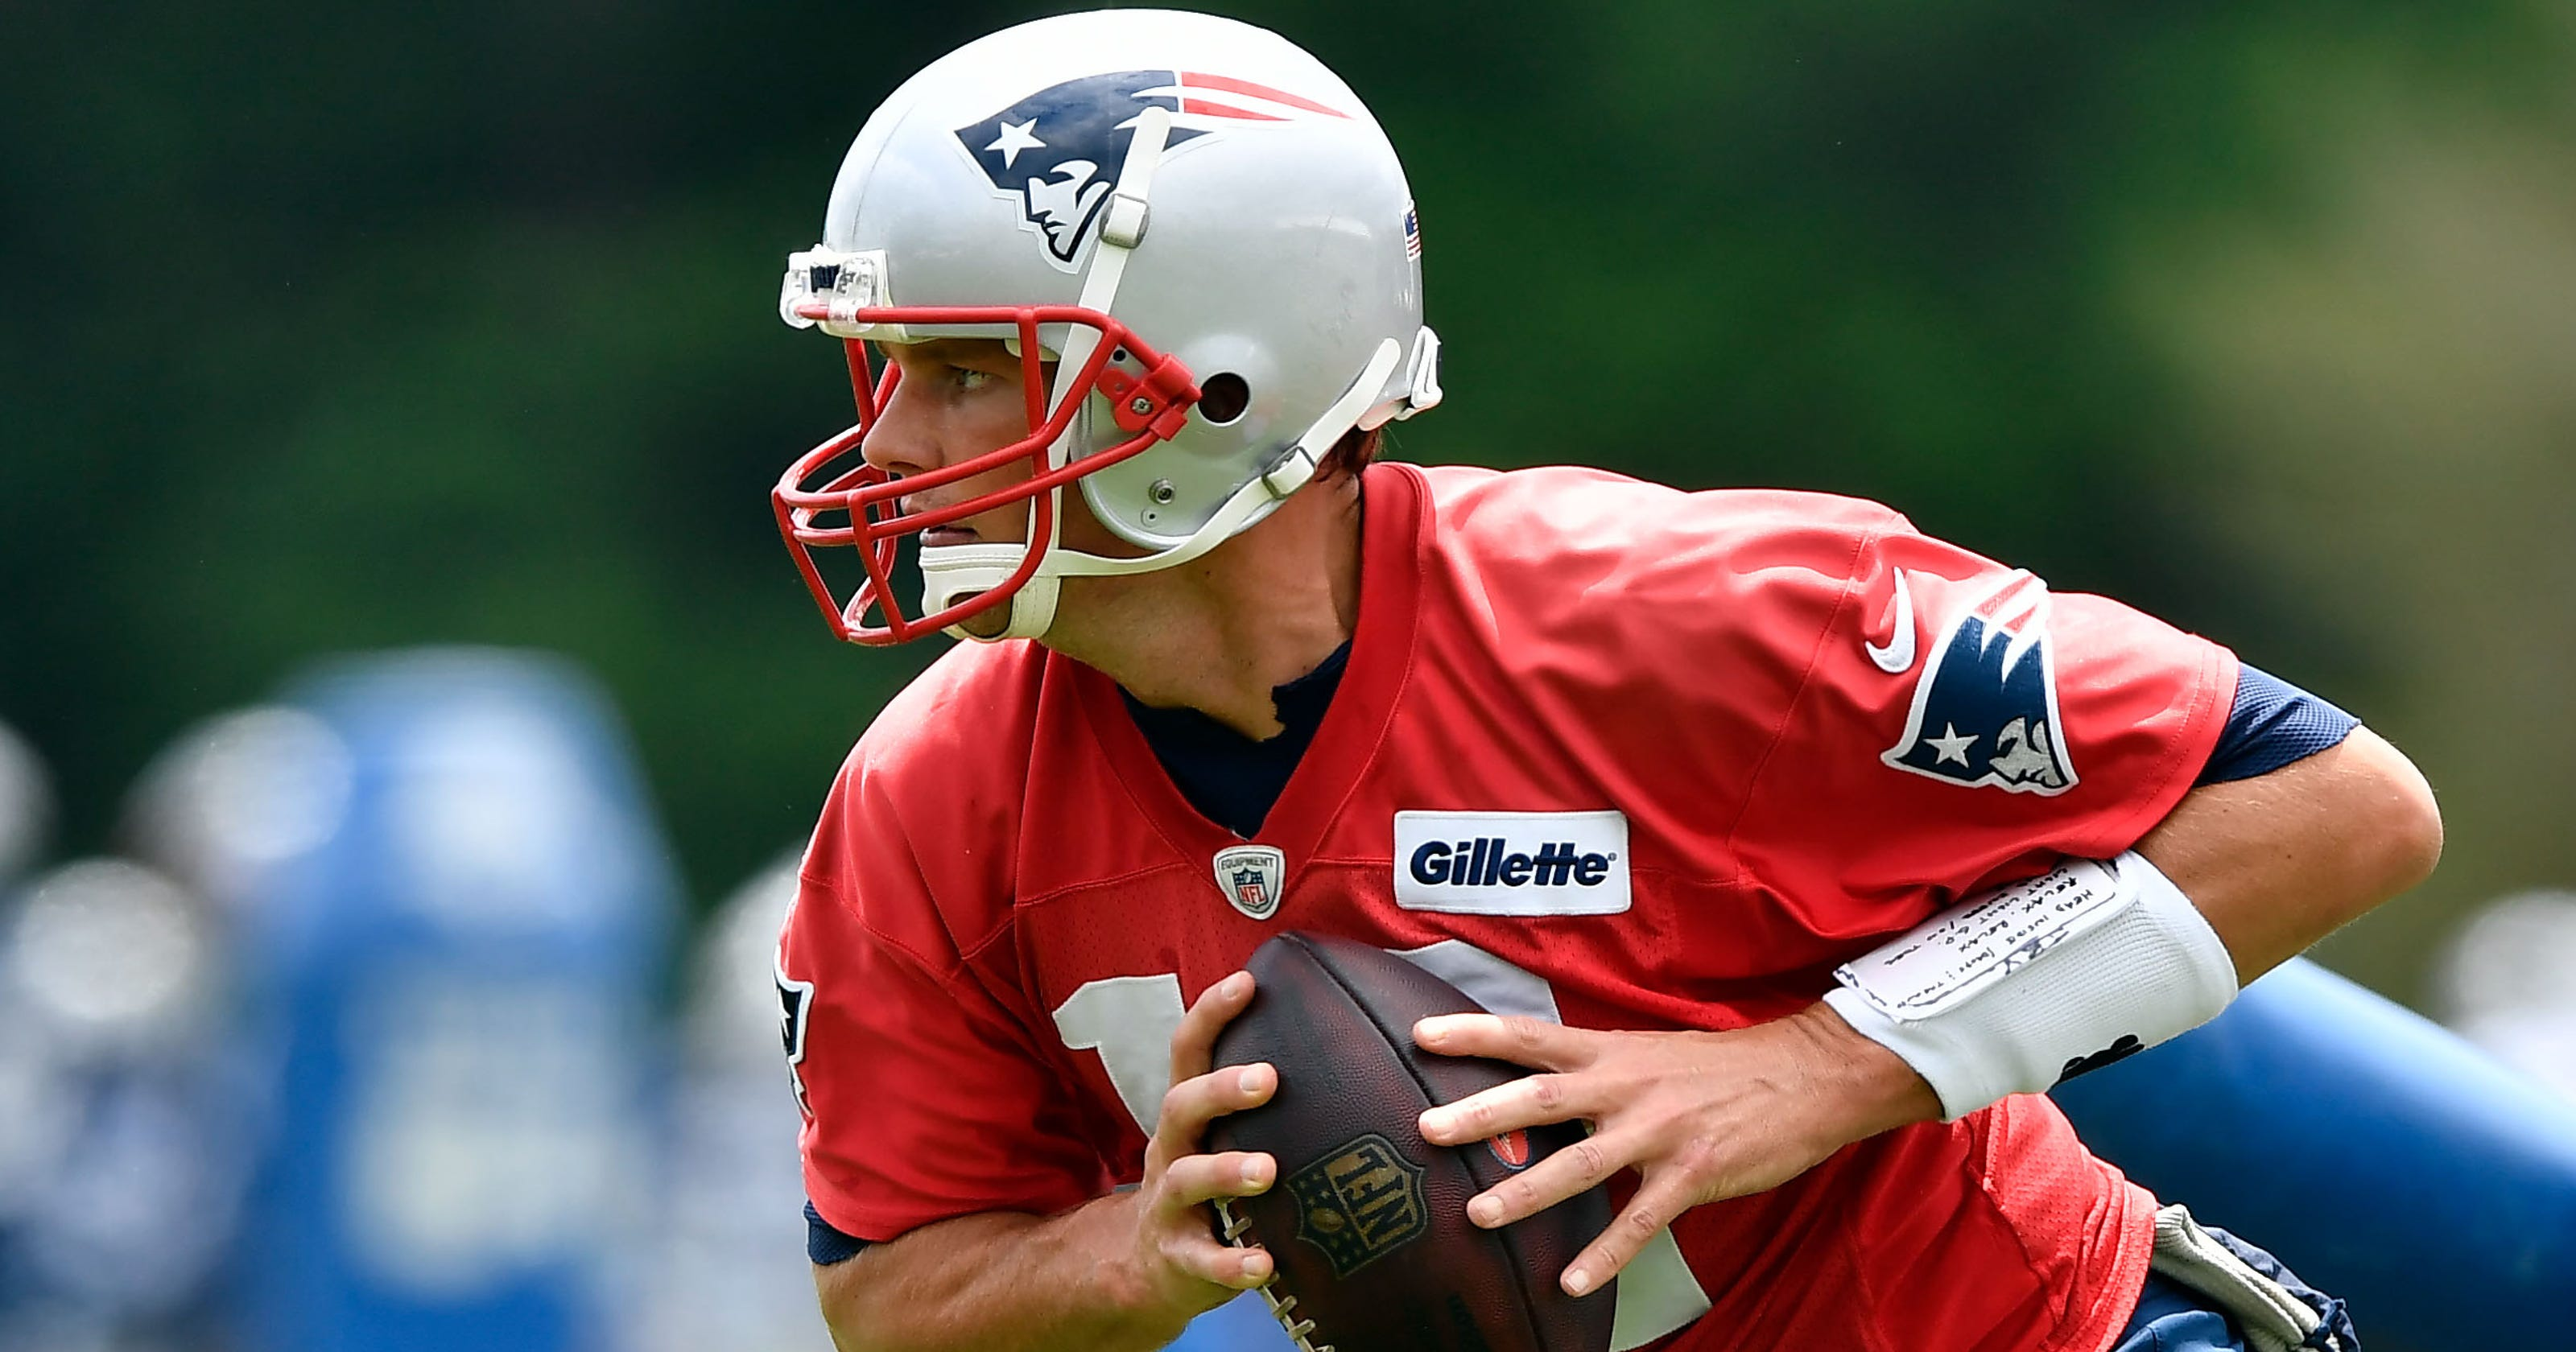 33d29af0d Patriots  Tom Brady embraces new challenge while focusing on family